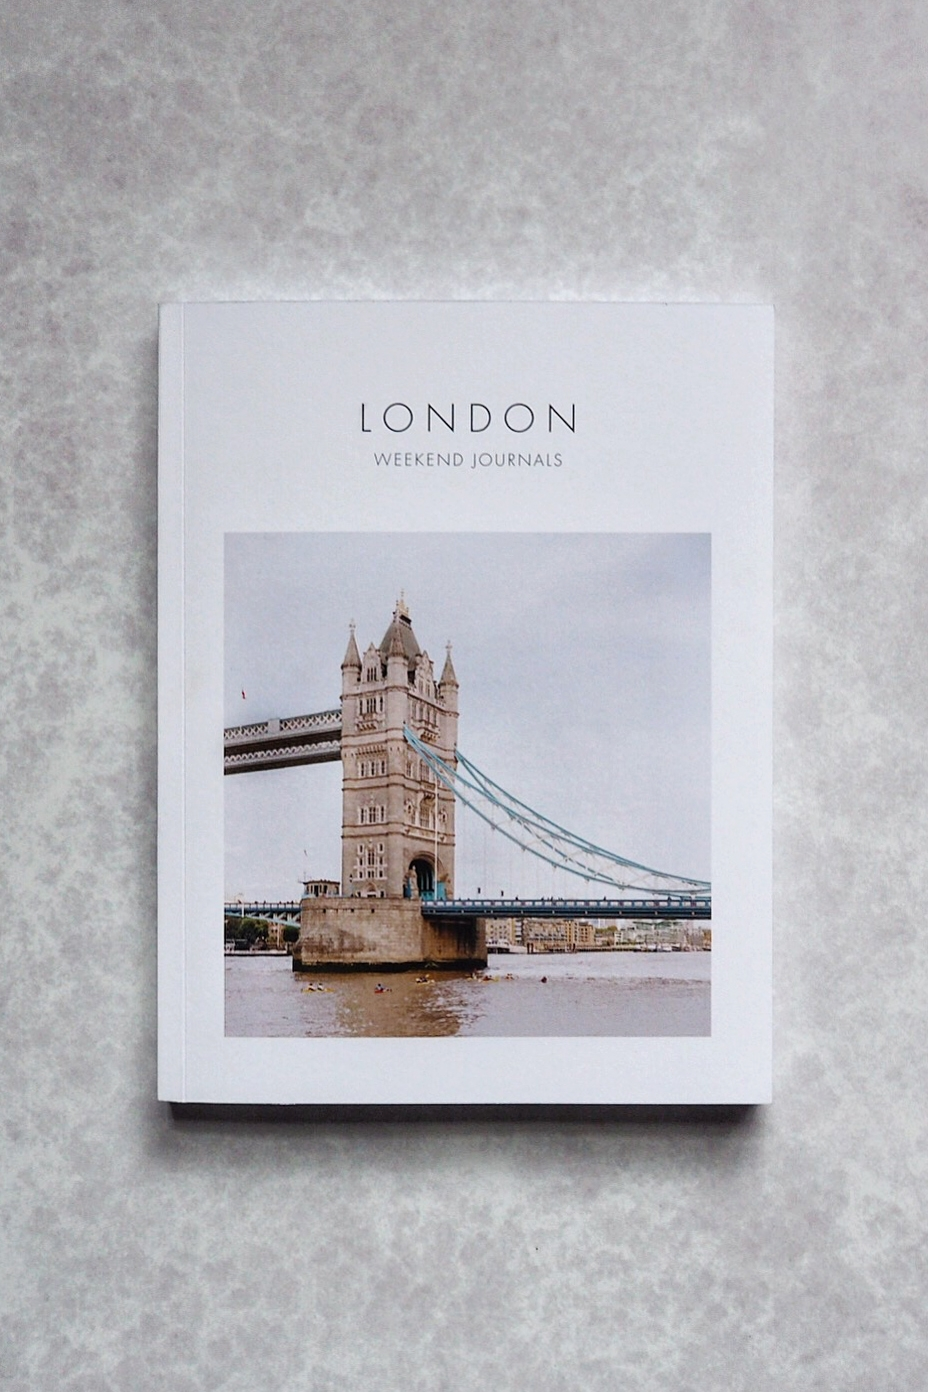 evening standard: London By the weekend journals